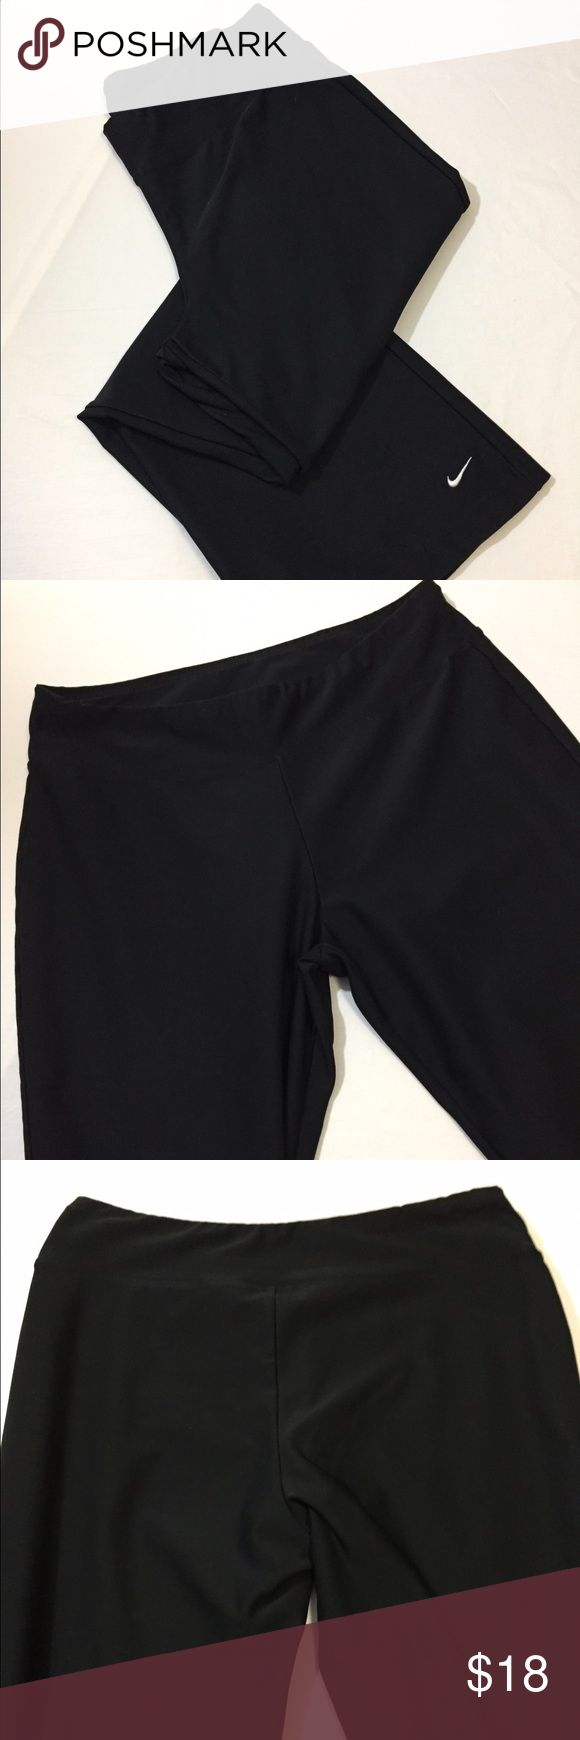 "Nike women's poly/spandex pants Nike women's poly/spandex pants straight leg with logo on bottom left leg EUC measures approx 15"" across with 23"" inseam Nike Pants Track Pants & Joggers"